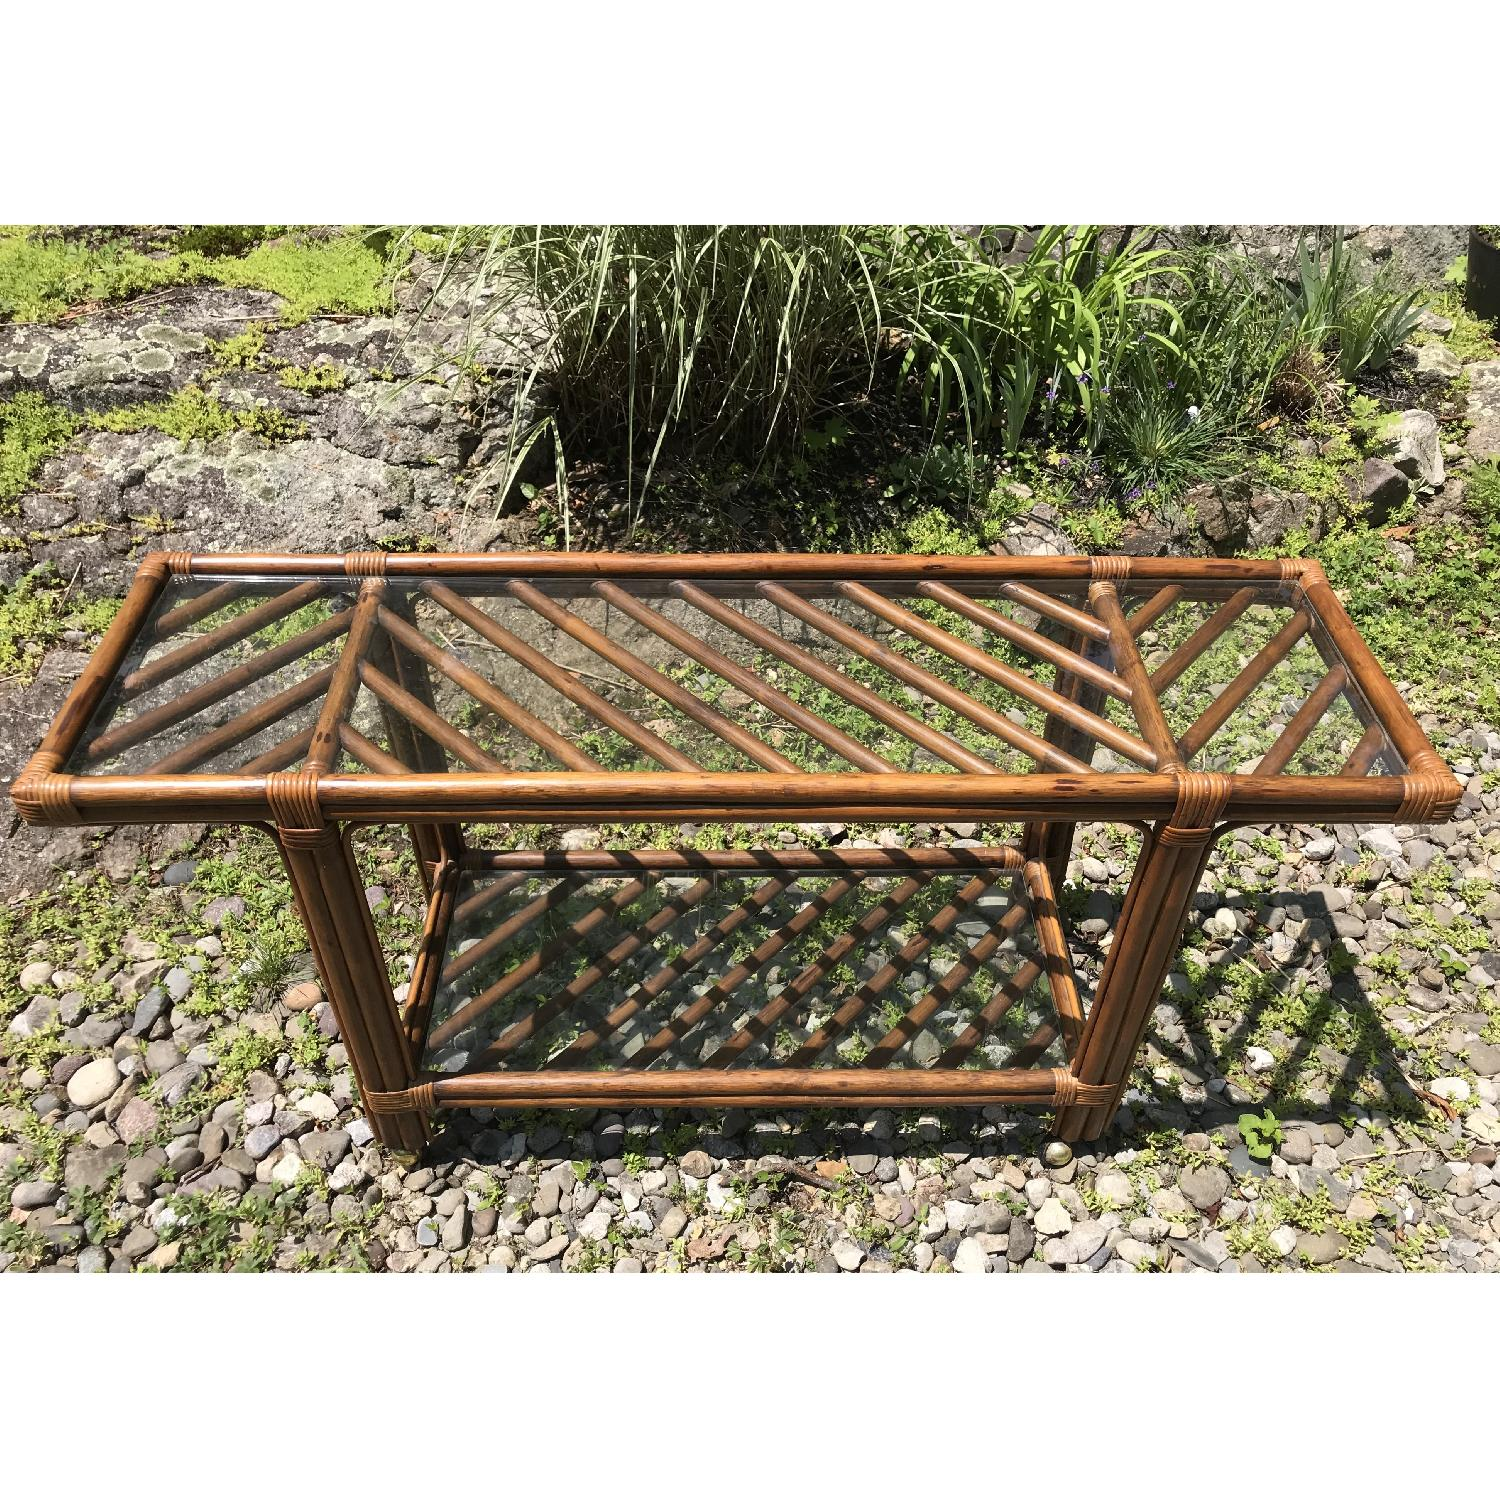 Vintage Bamboo Rattan Bar Cart/Console Table - image-1